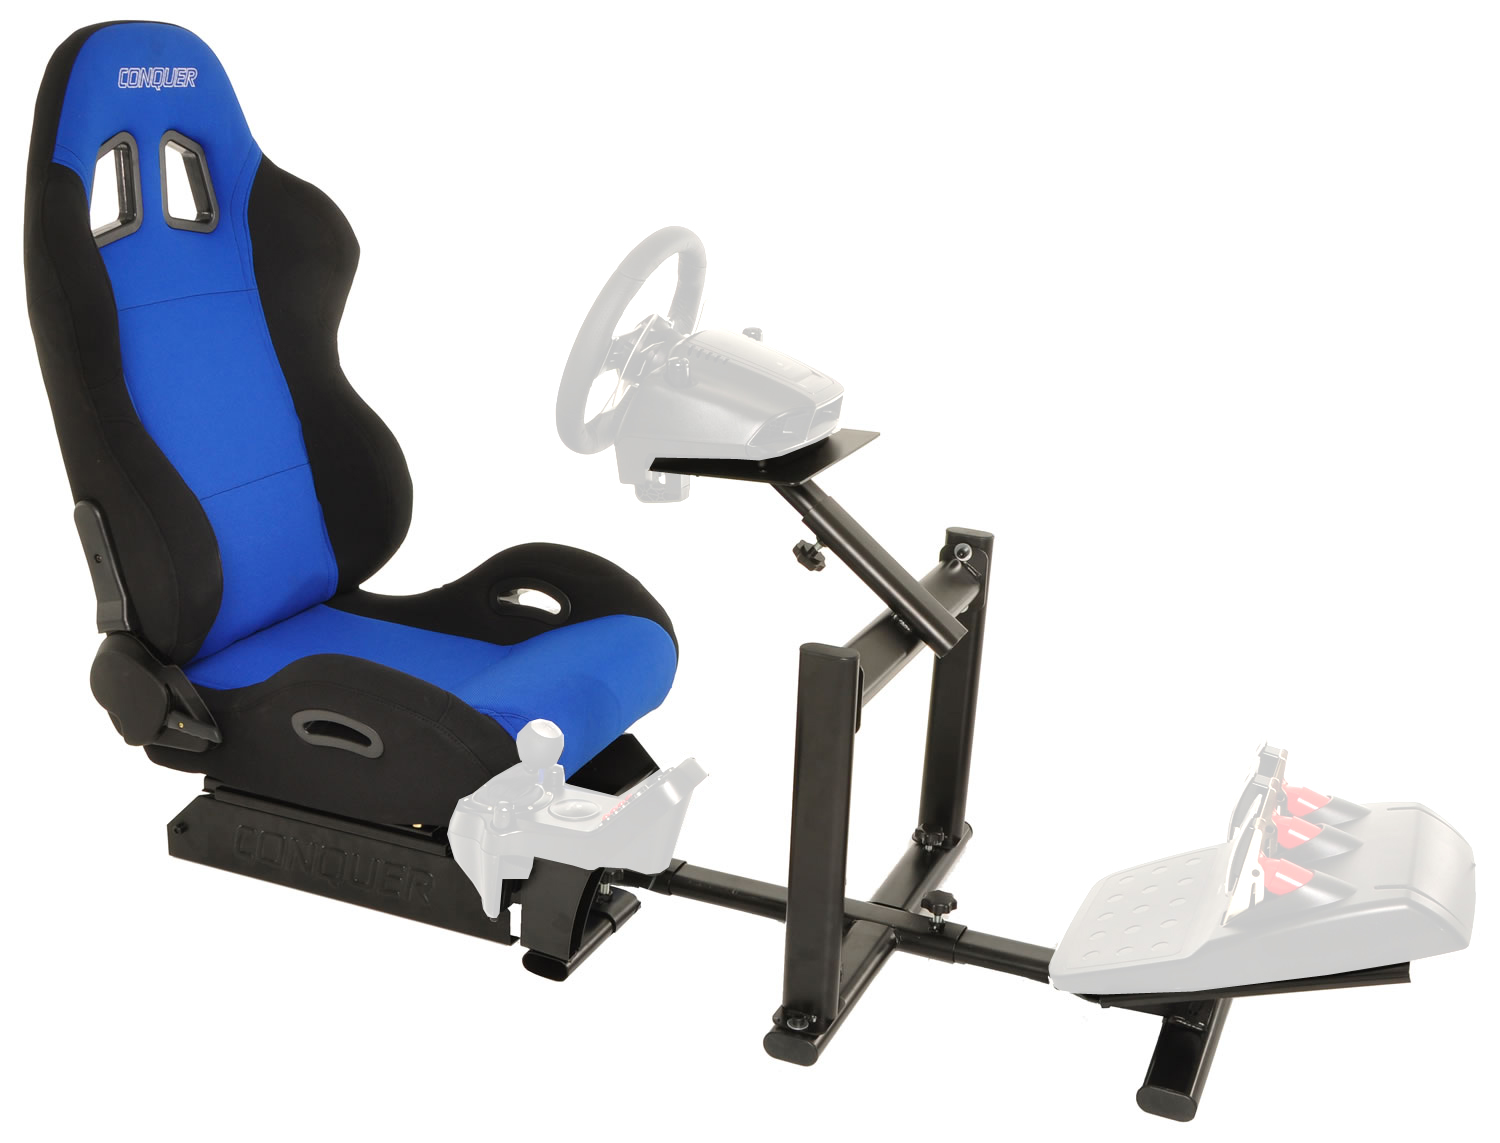 racing simulator chair hydraulic uk clear hanging conquer cockpit driving seat reclinable